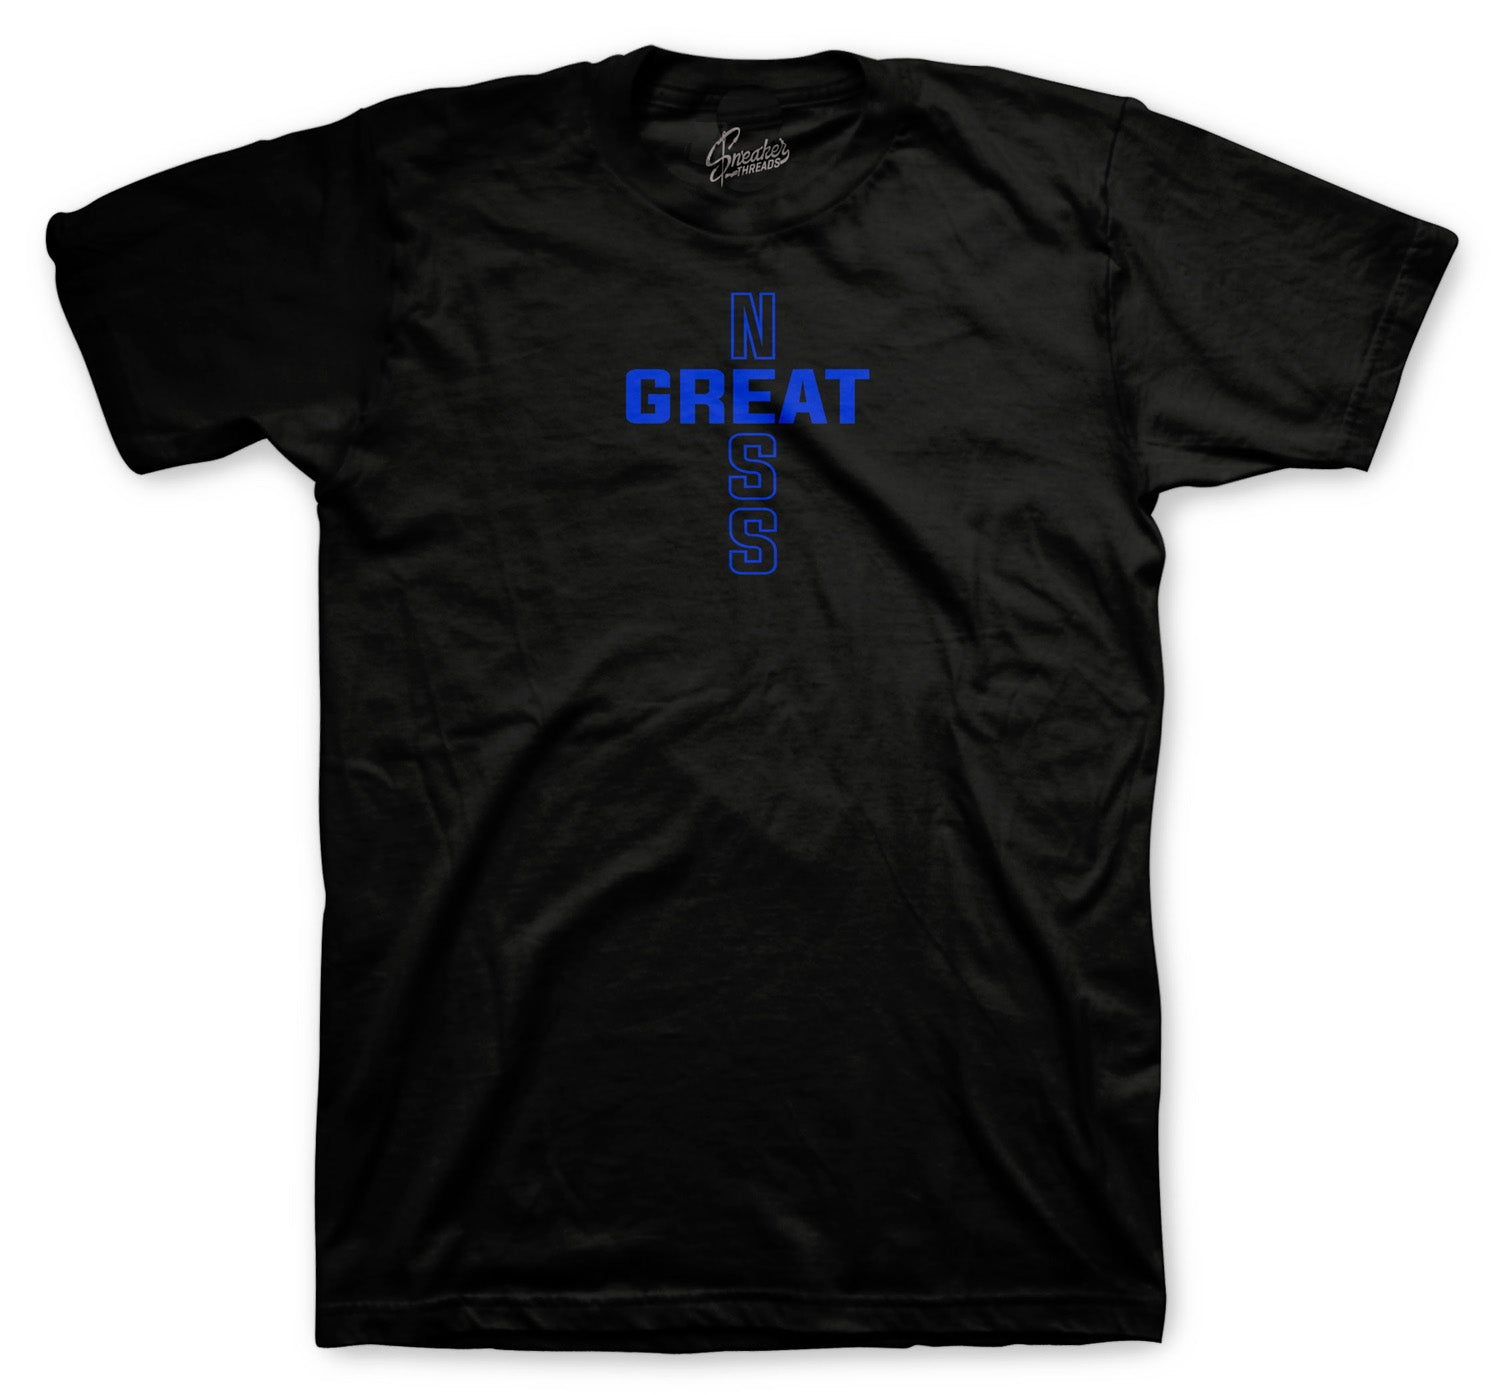 Game royal 12s matching tees created to match perfect with the Jordan 12 game royals